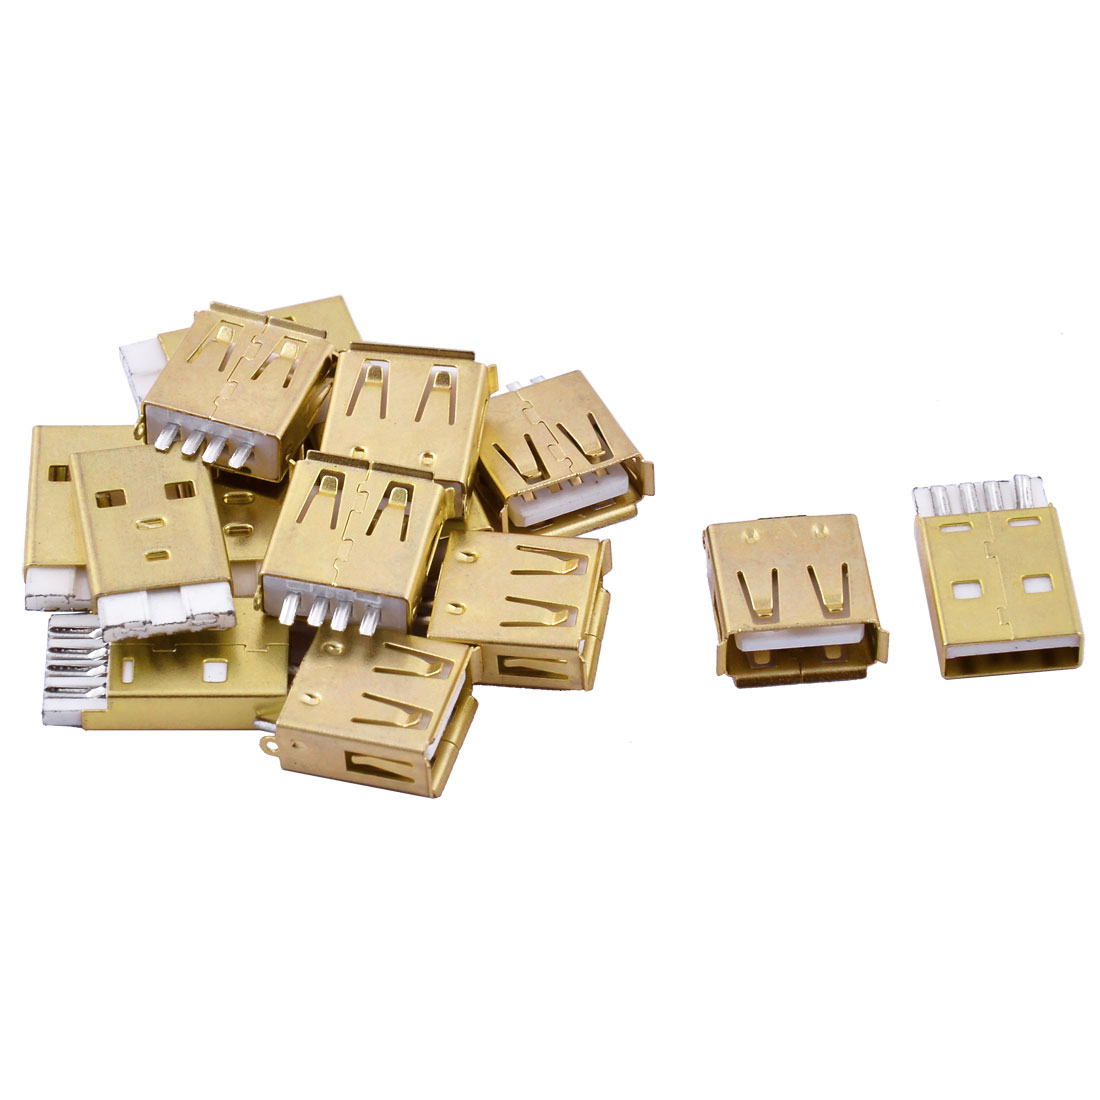 USB2.0 Type A 4 Pins Male to Female Jack Socket Connectors 7 Pairs Gold Tone